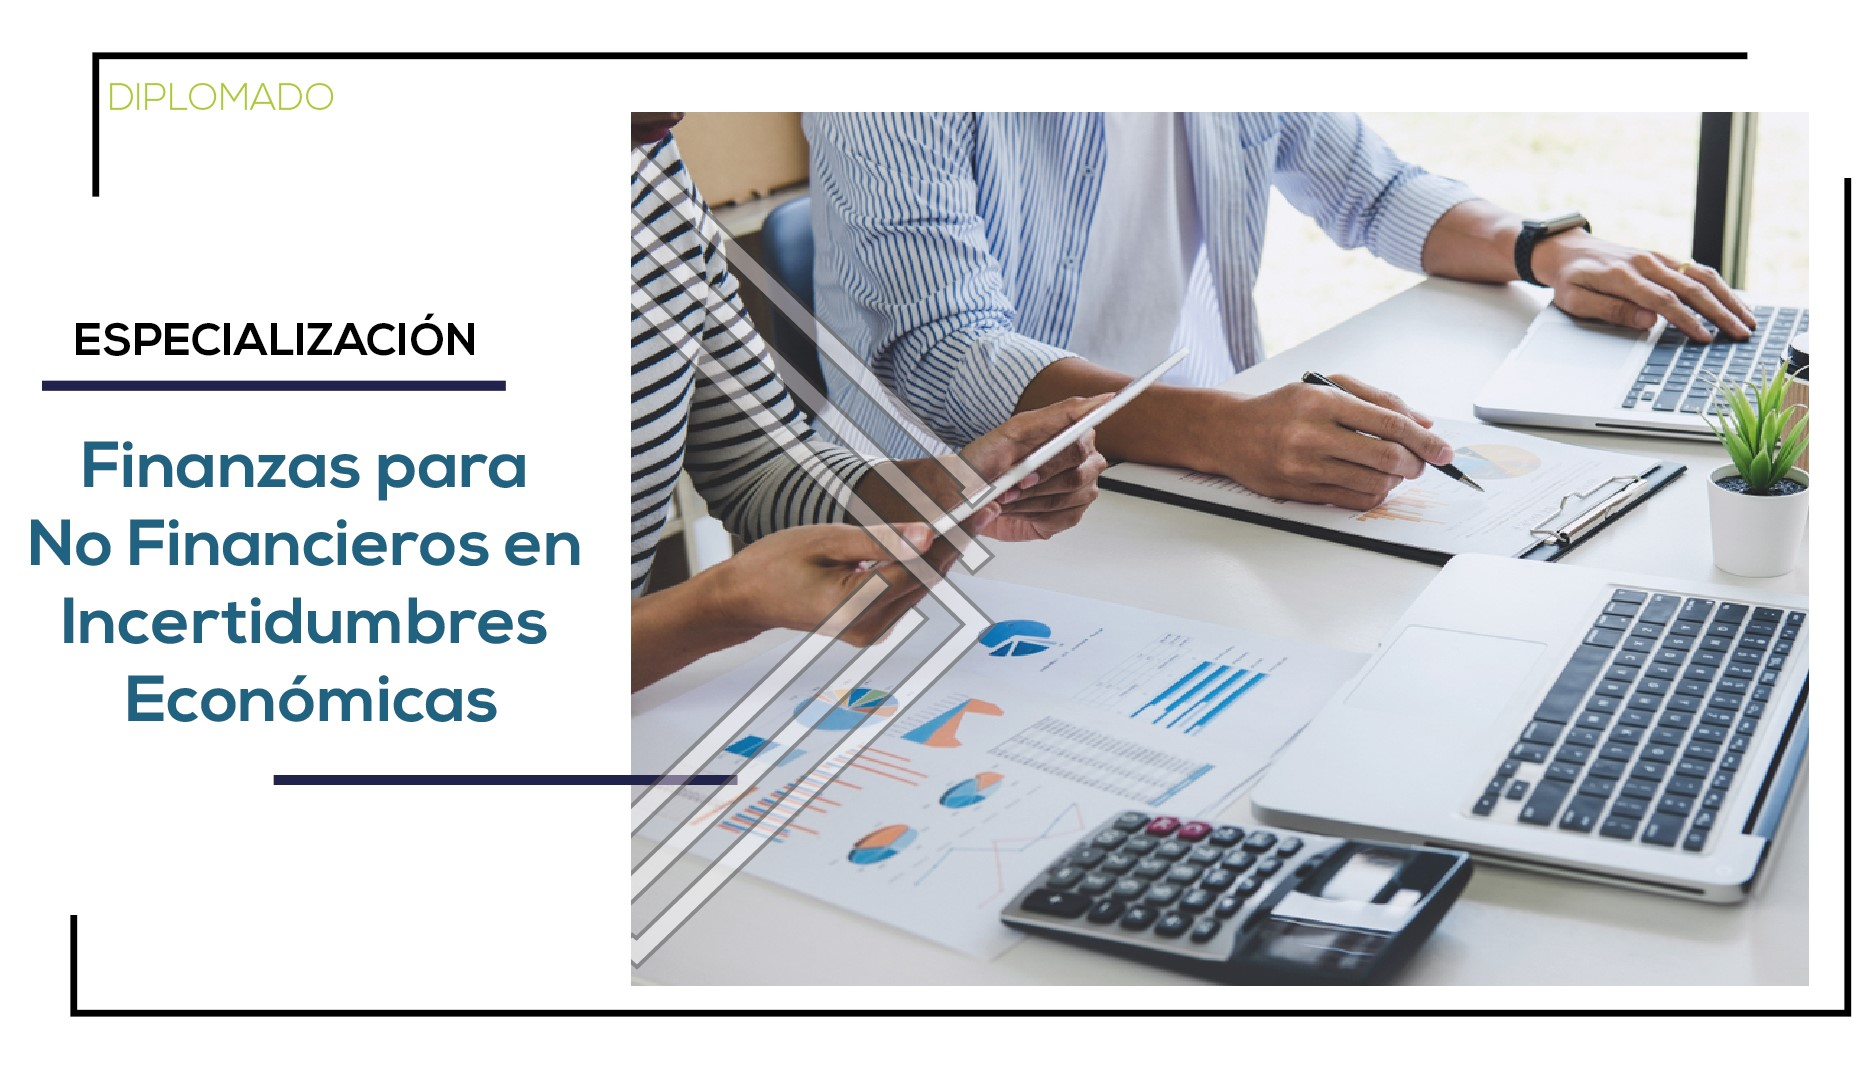 Especialización en Finanzas para No Financieros en Incertidumbres Económicas